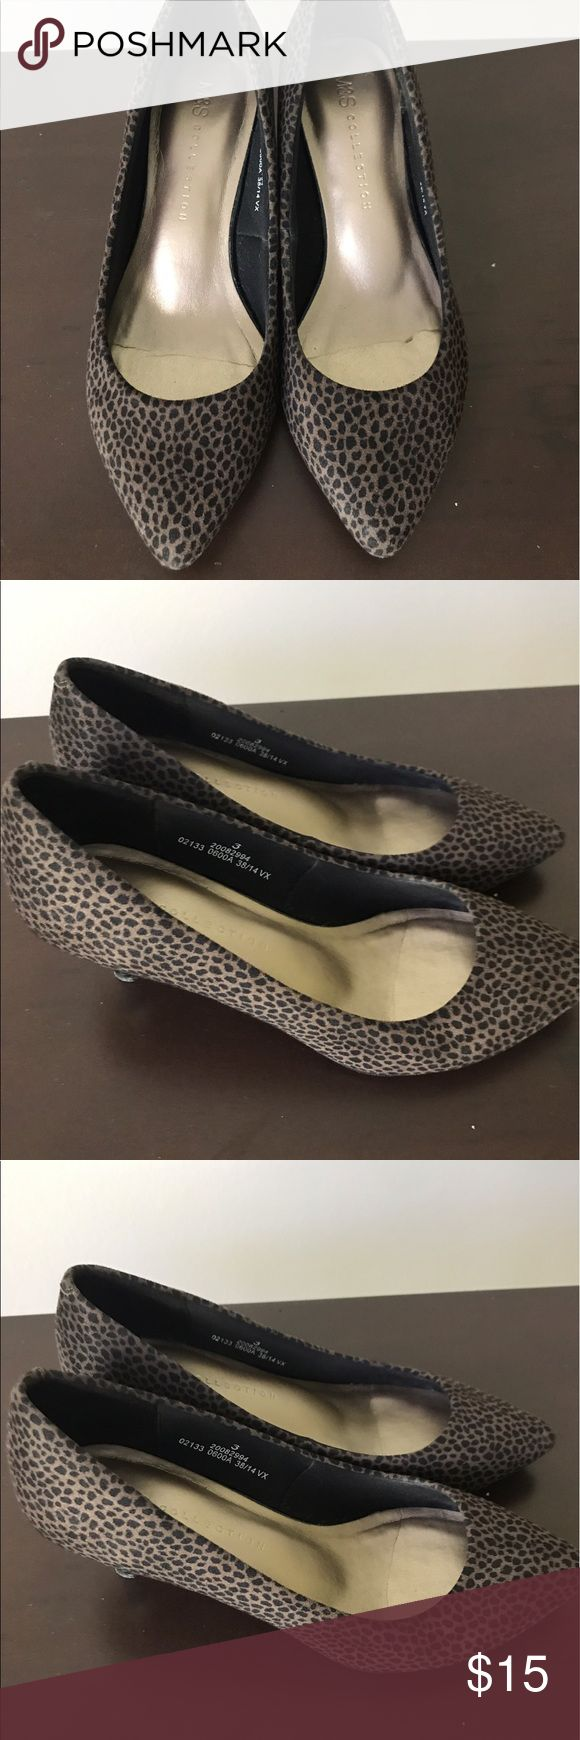 Mark & Spencer shoes, little heel. Very comfortable, worn once, conditions like new , cute leopard print. European size 36 Marks & Spencer Shoes Heels